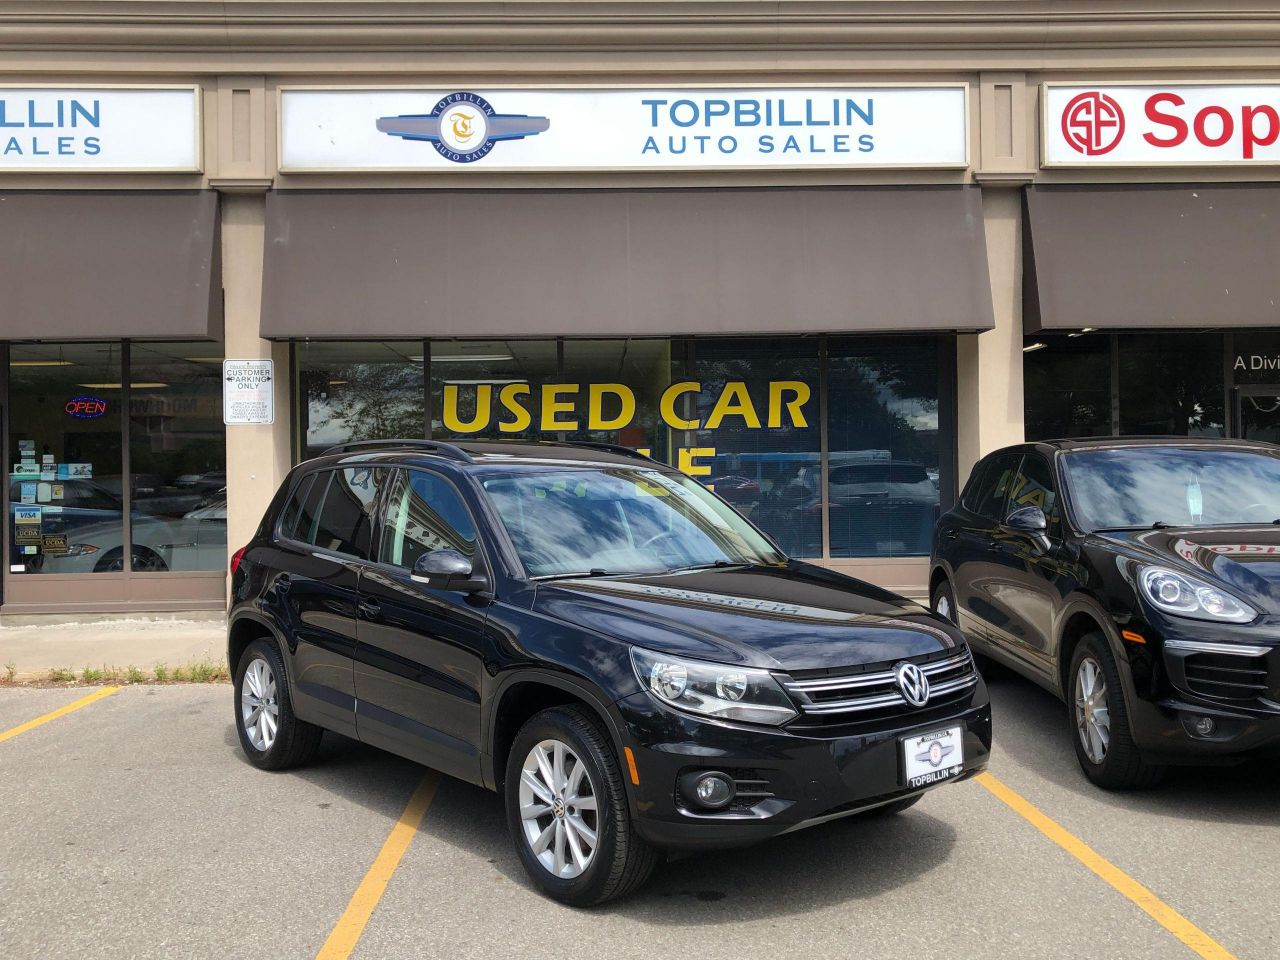 2015 Volkswagen Tiguan AWD Leather, Pano Roof, Backup Cam